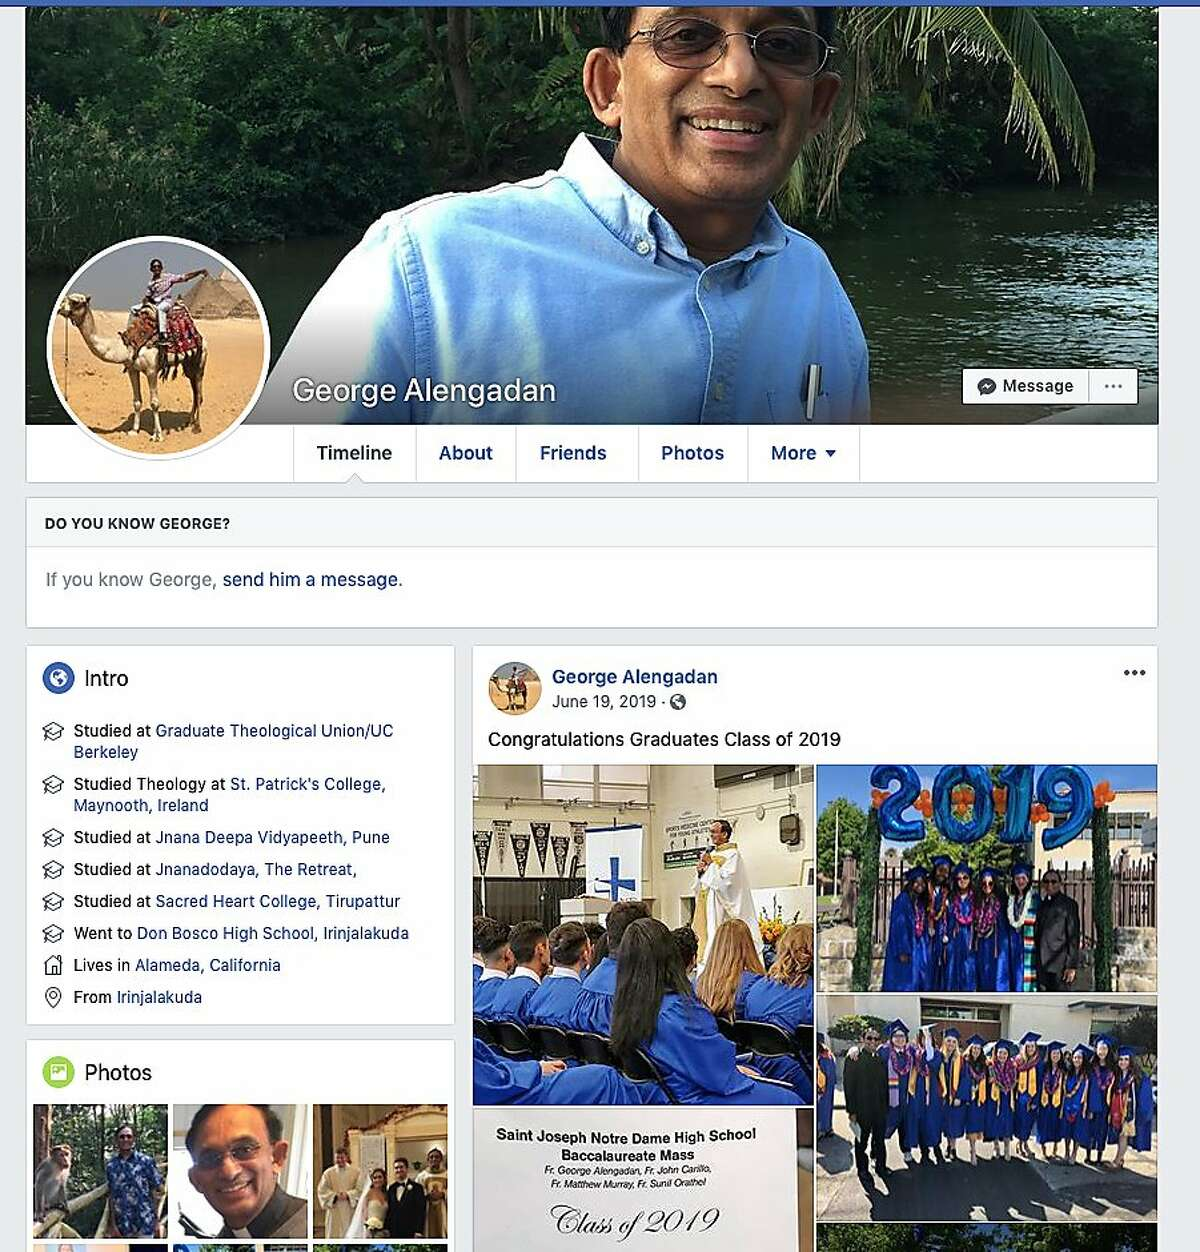 Pictured is the Facebook page of Father George Alengaden, who was reported to police by the Catholic Diocese of Oakland for allegedly sexually harassing a number of employees at St. Joseph Basilica. The diocese ordered the priest to participate in training and receive support at Christ the King Church in Pleasant Hill, upsetting members of the parish when they learned of his past history.